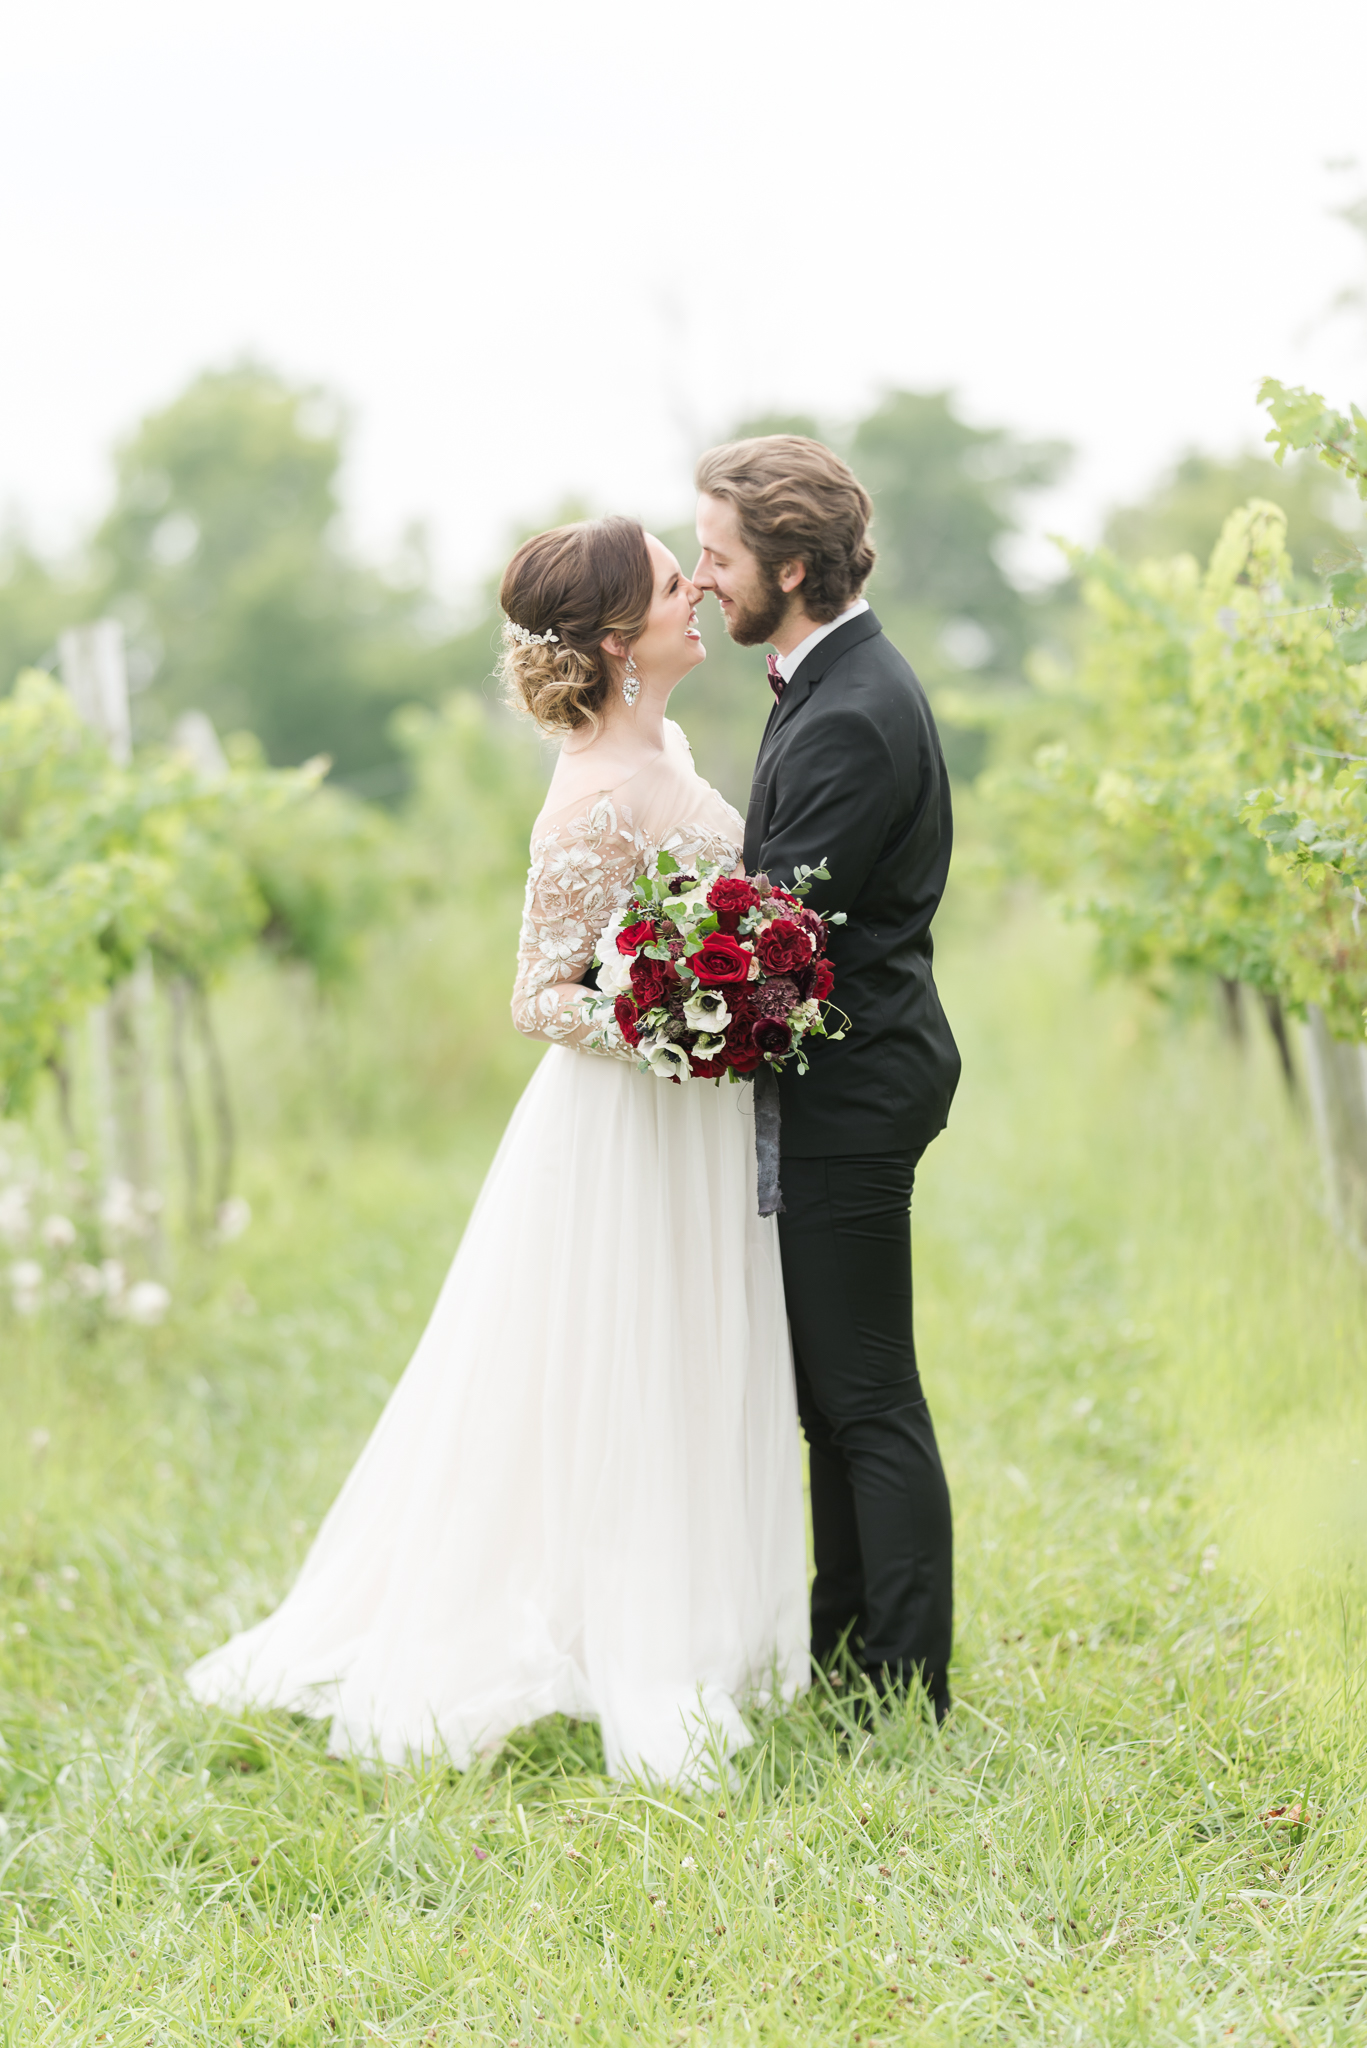 Poses to look amazing and thin in your wedding photos